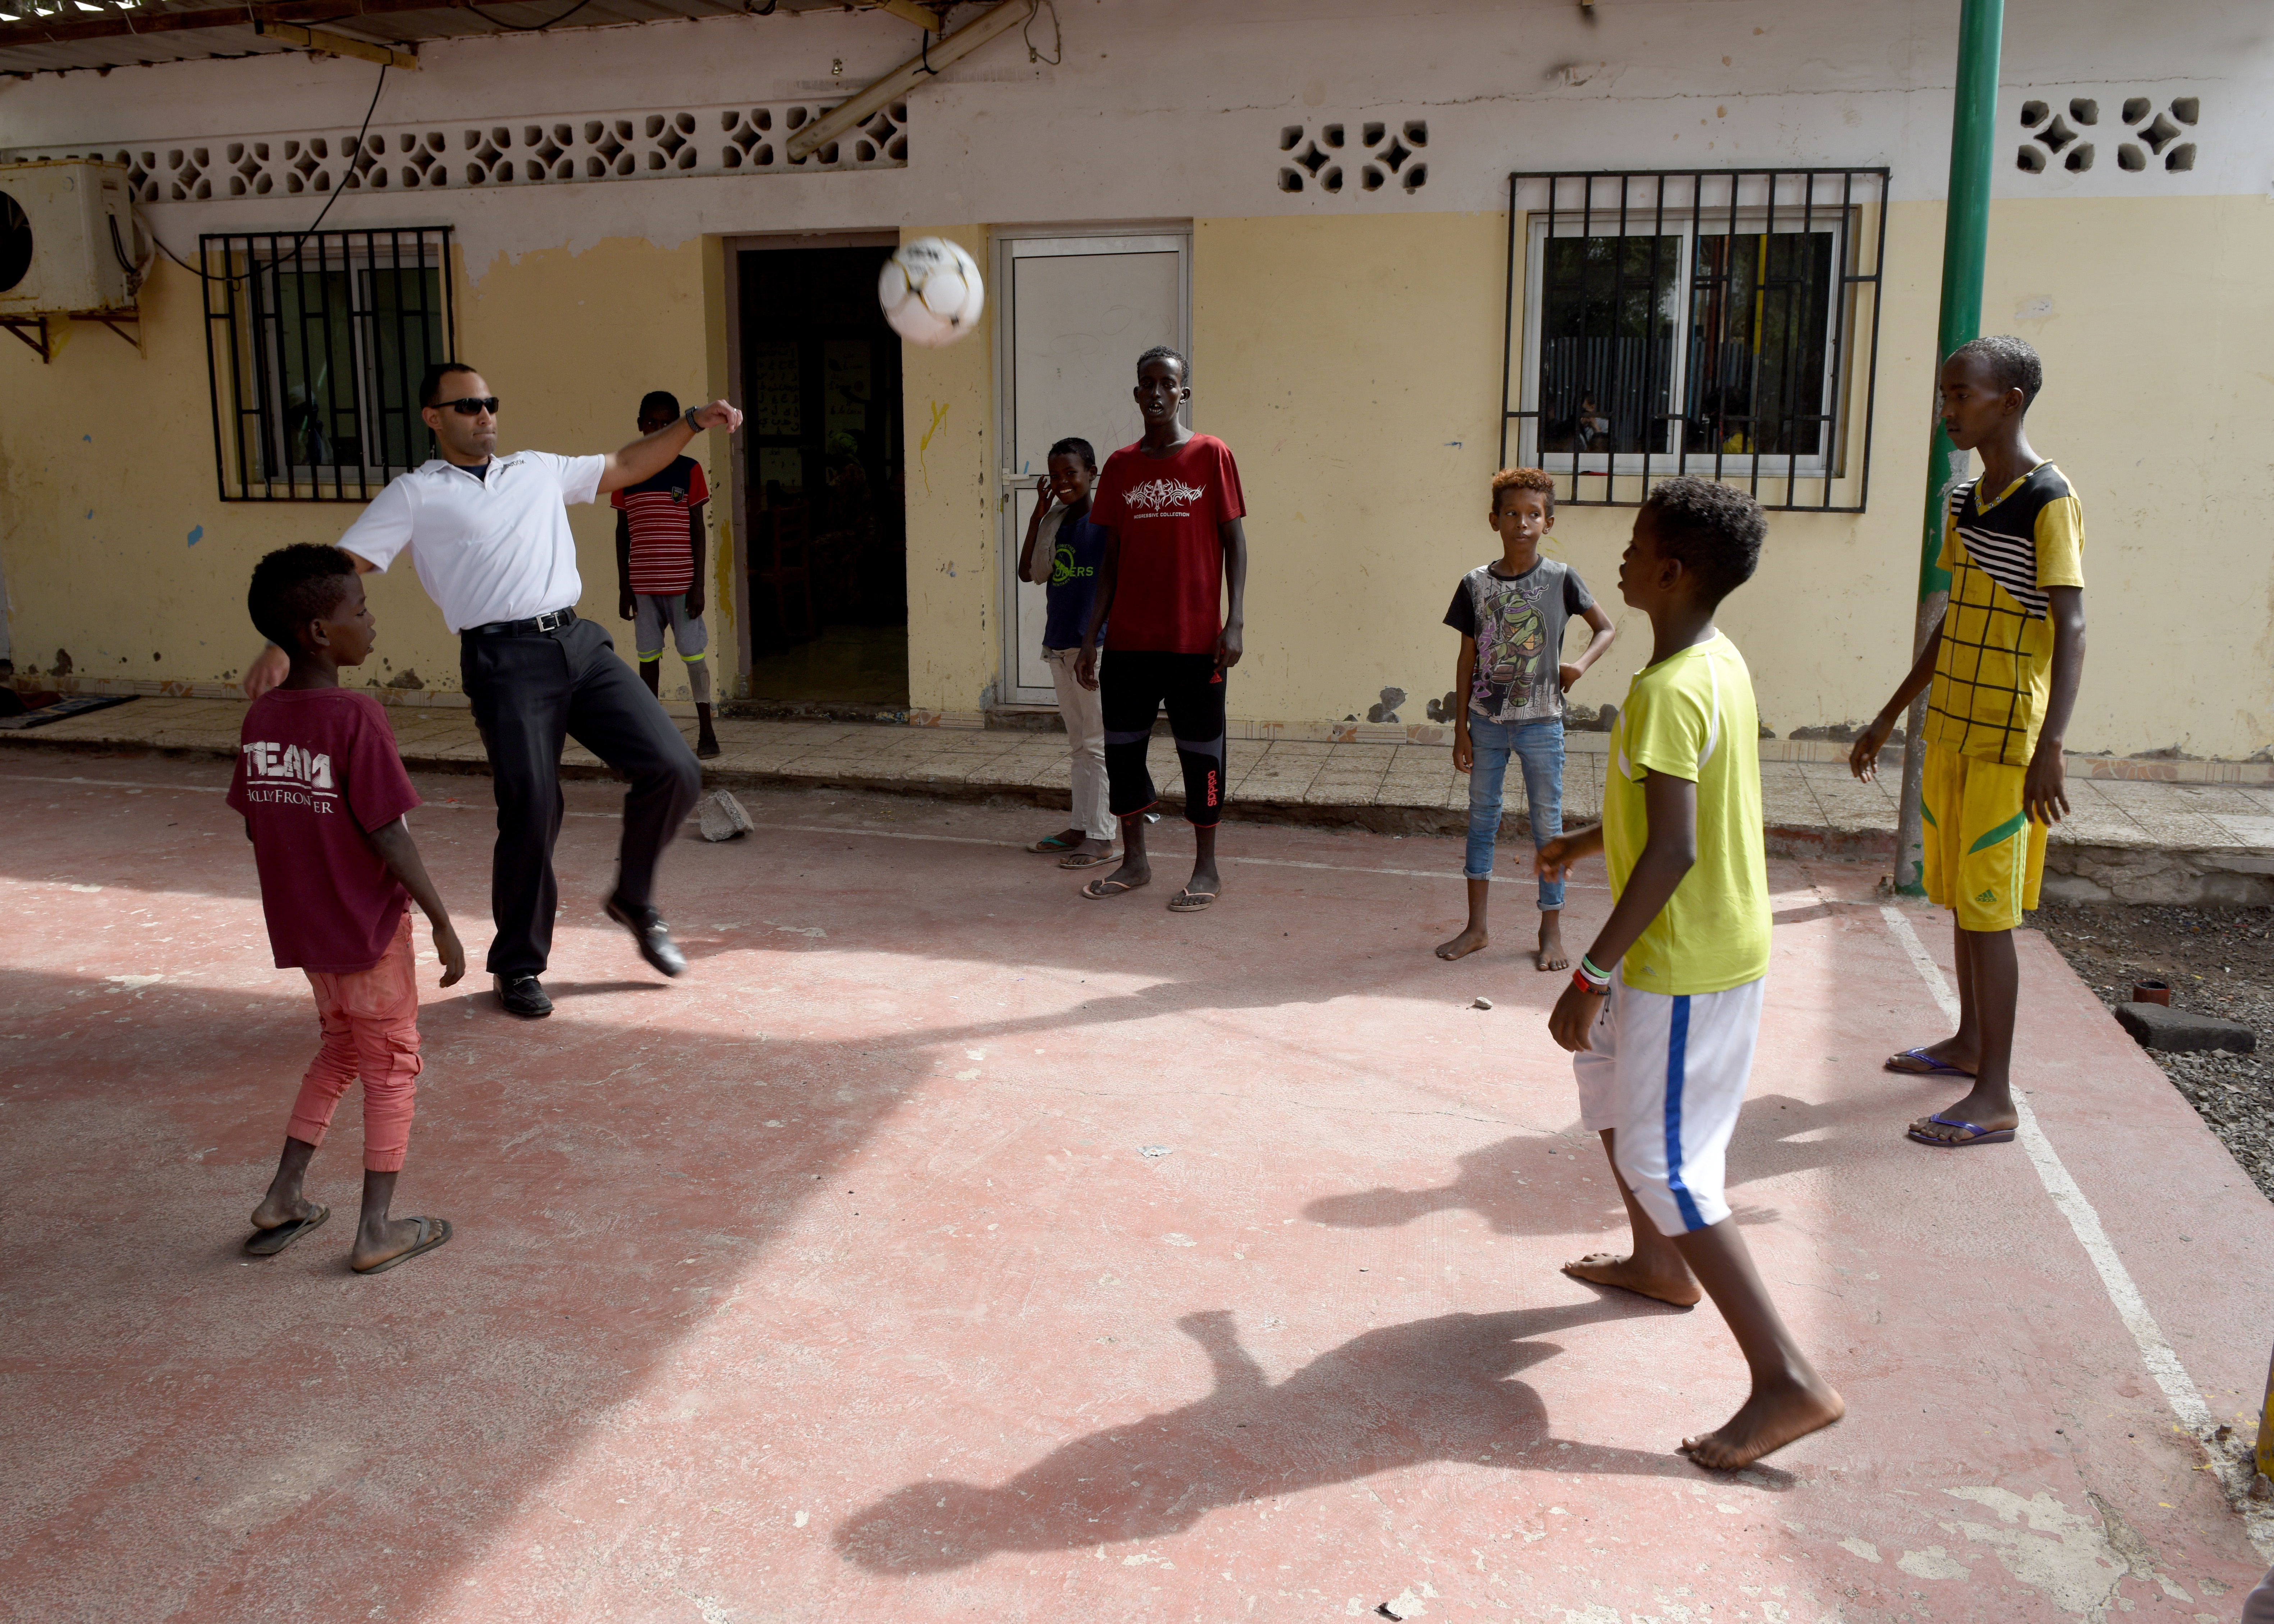 U.S. Army 1st Lt. Luis Alvarez, chaplain candidate with the Massachusetts National Guard, kicks a soccer ball with children at Caritas in Djibouti City, Djibouti, while visiting Combined Joint Task Force-Horn of Africa (CJTF-HOA), April 25, 2019. Caritas is a day center that provides care to nearly 100 children a day and enables CJTF-HOA members with a unique opportunity to interact with the local community through cultural exchanges in Djibouti City. (U.S. Air Force Photo by Staff Sgt. Franklin R. Ramos)